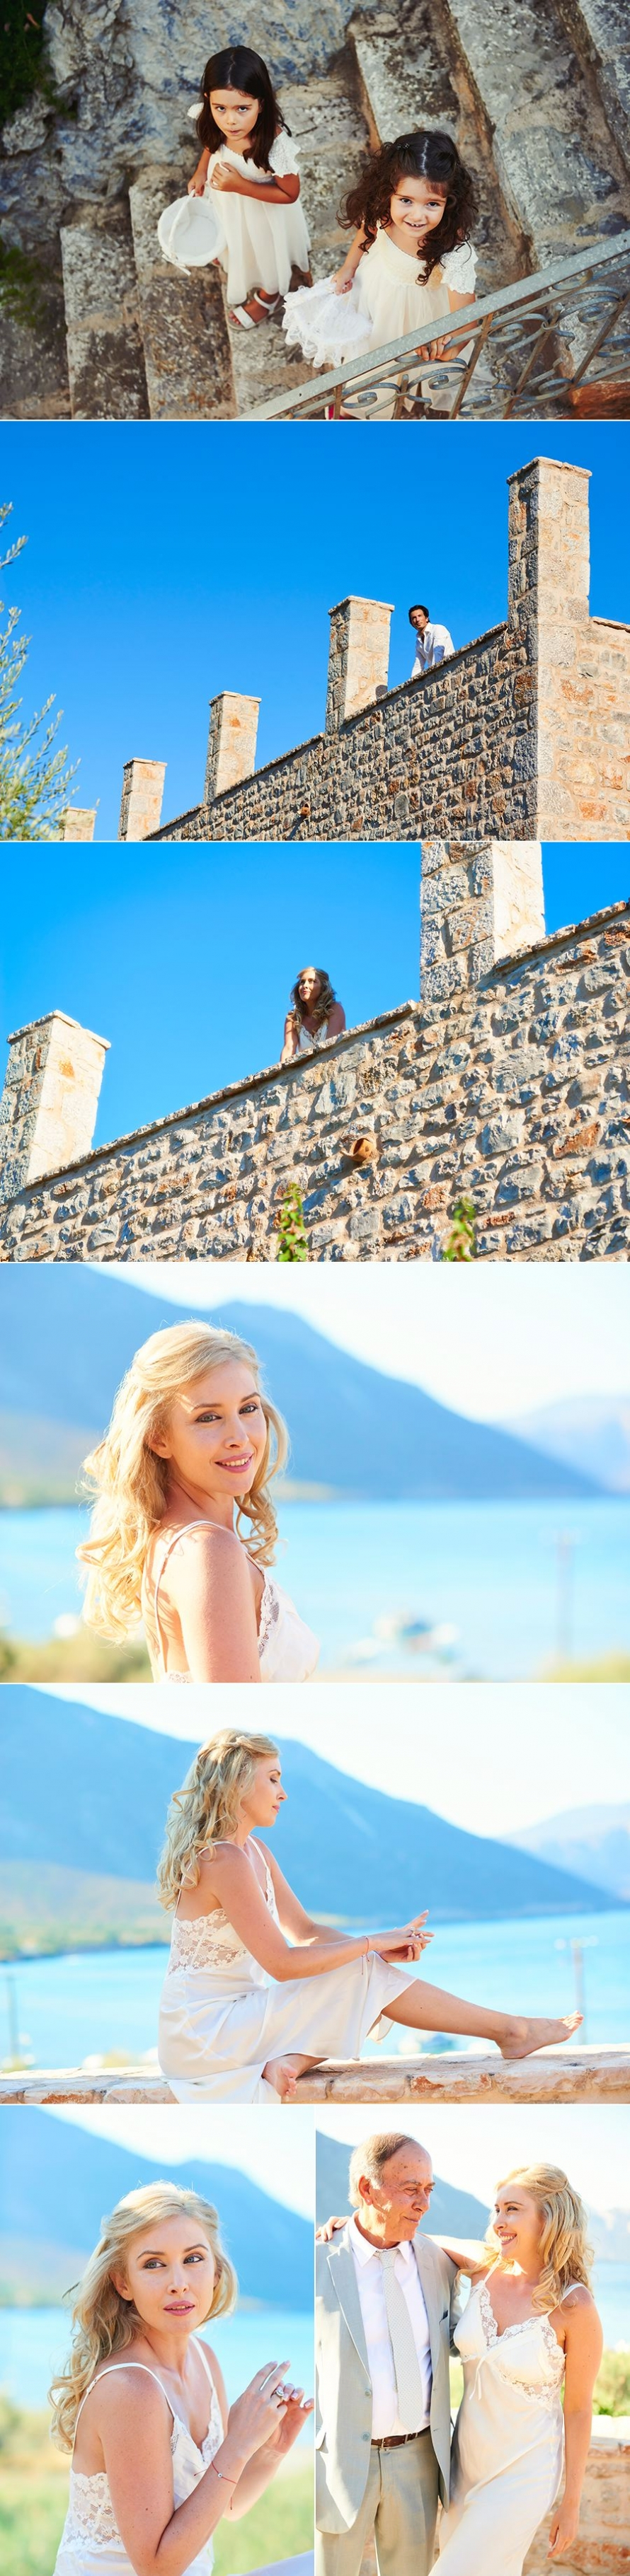 giannis-stella-wedding-photo-03